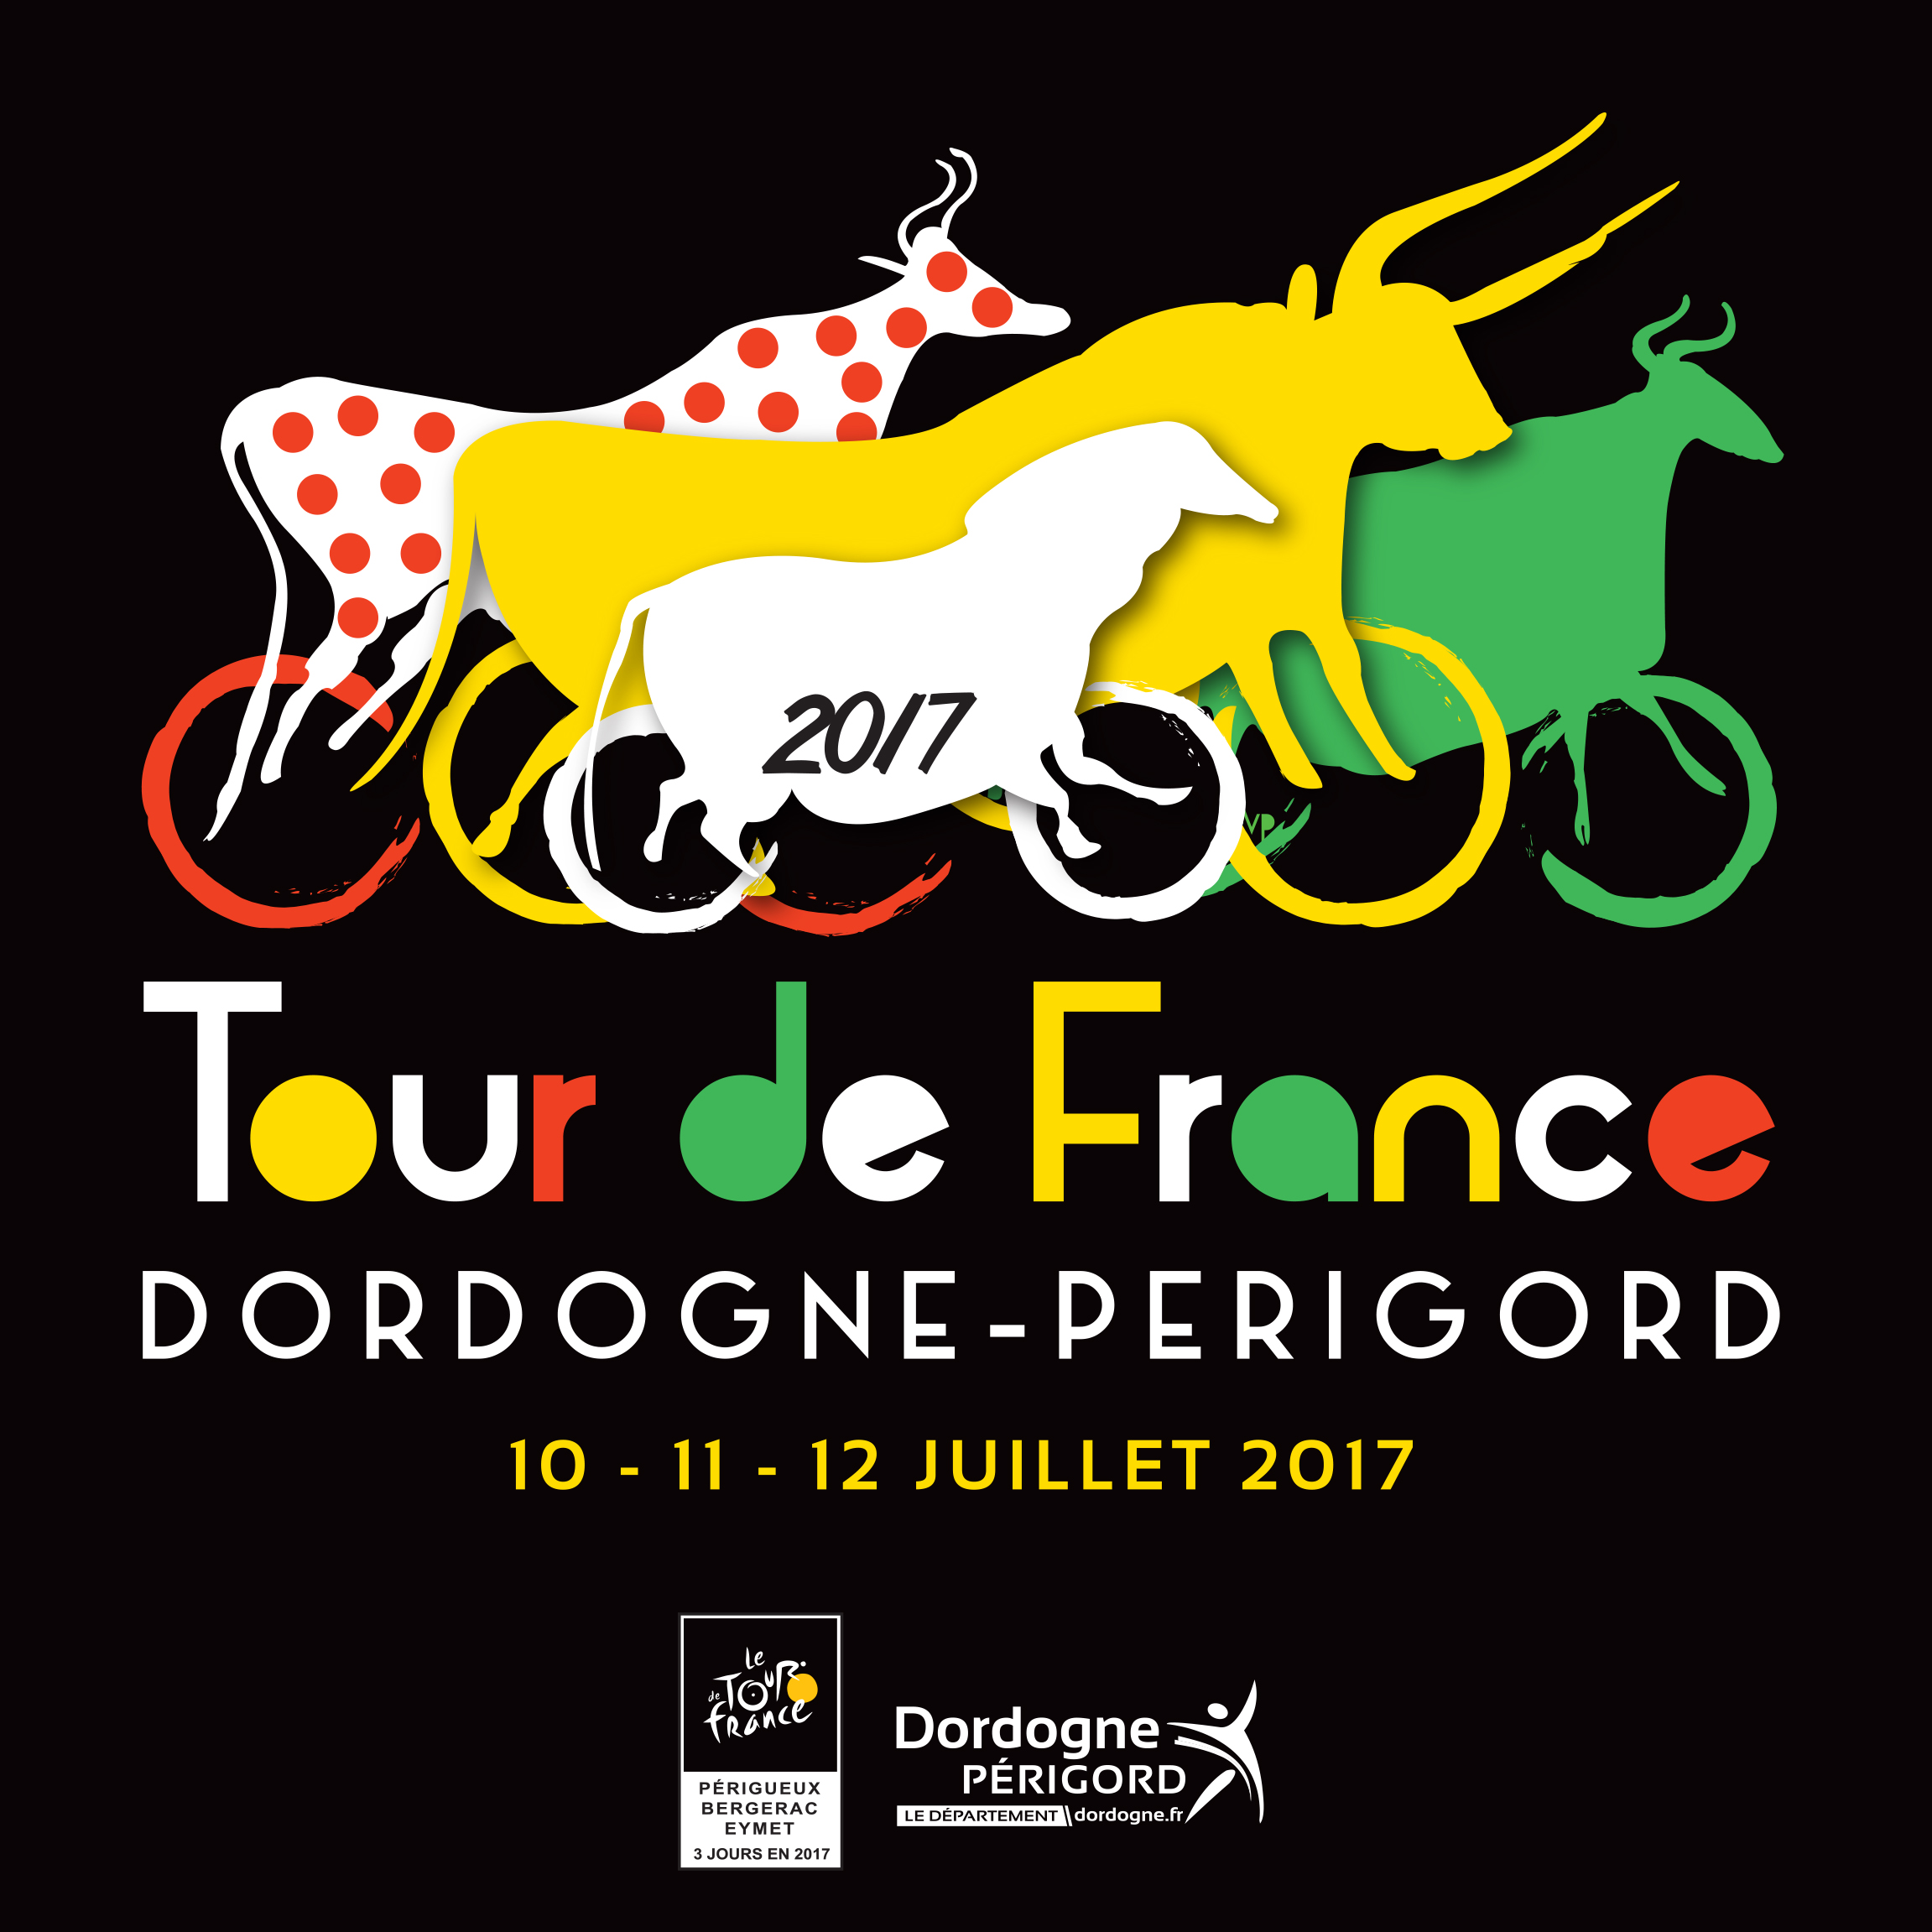 Image article EYMET, VILLE ETAPE DU TOUR DE FRANCE